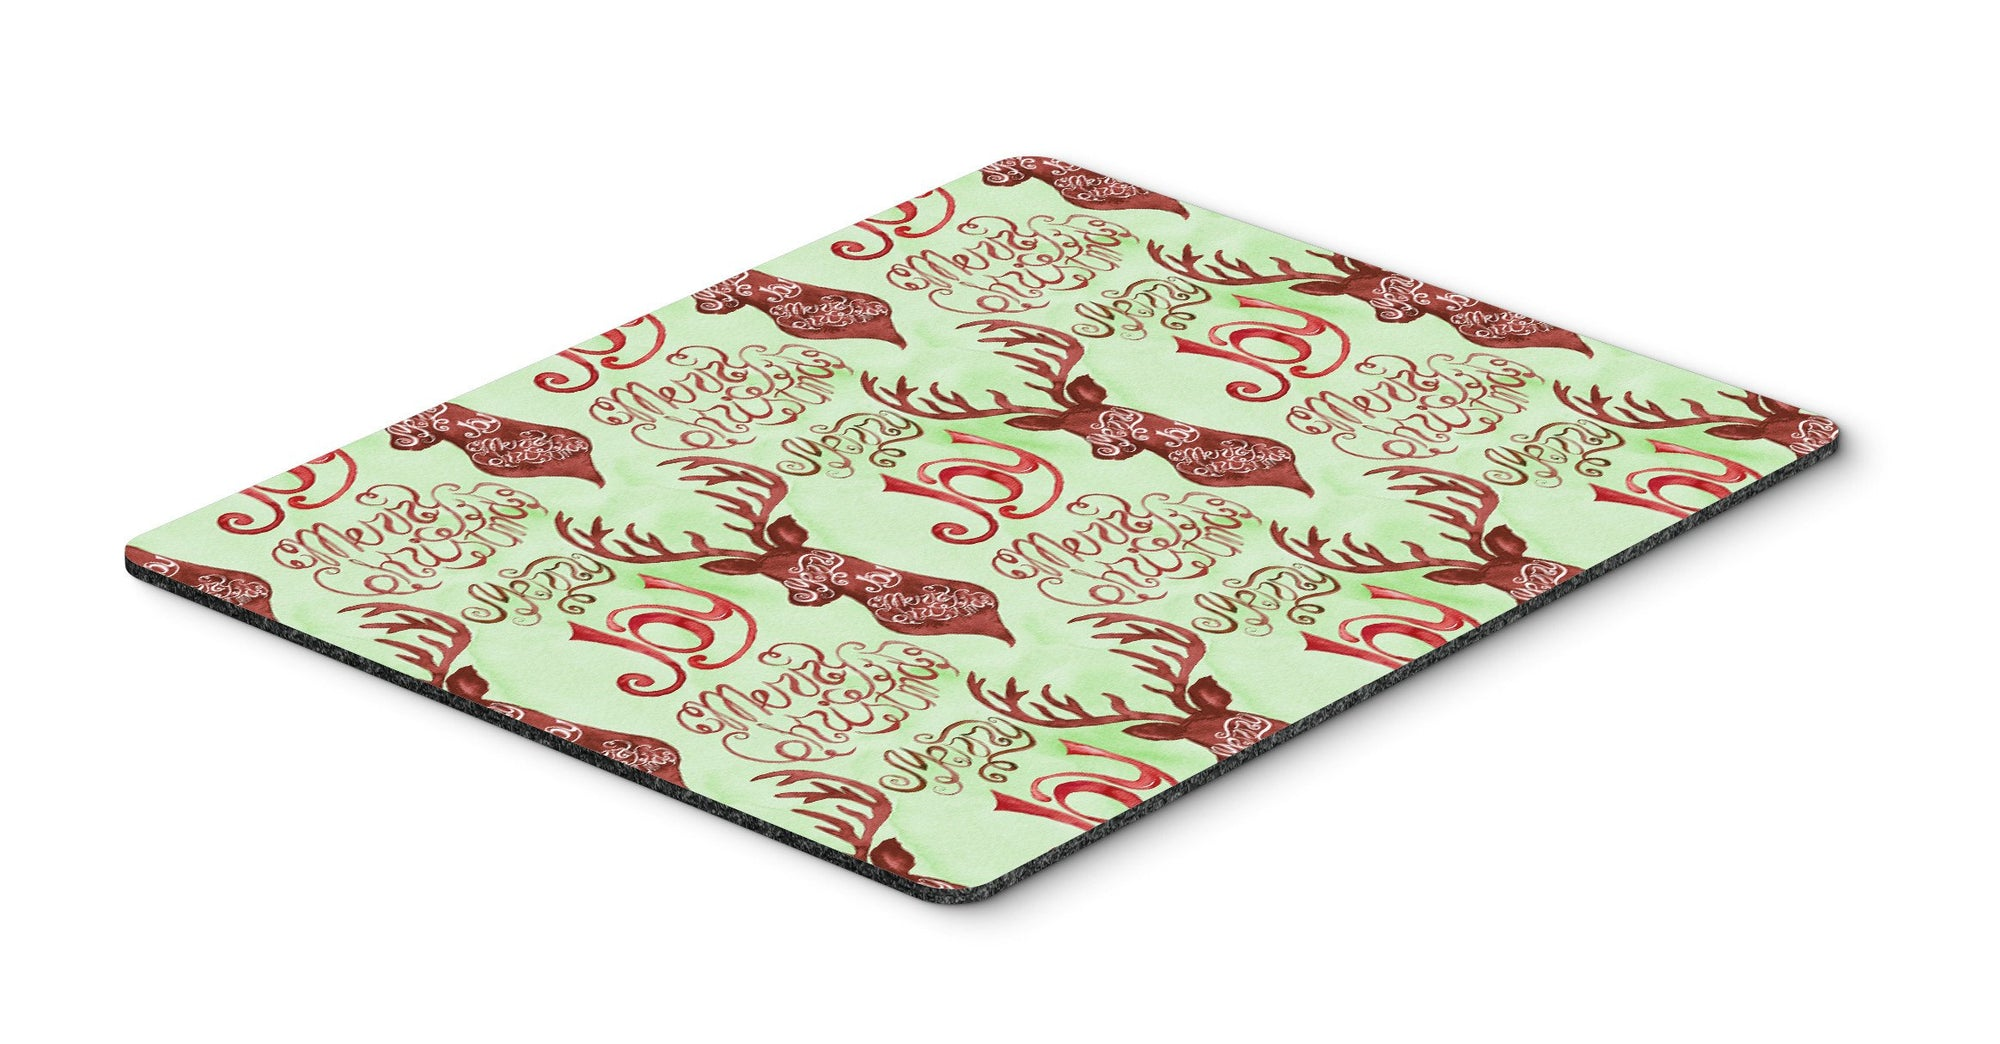 Merry Christmas Joy Reindeer Mouse Pad, Hot Pad or Trivet BB7488MP by Caroline's Treasures